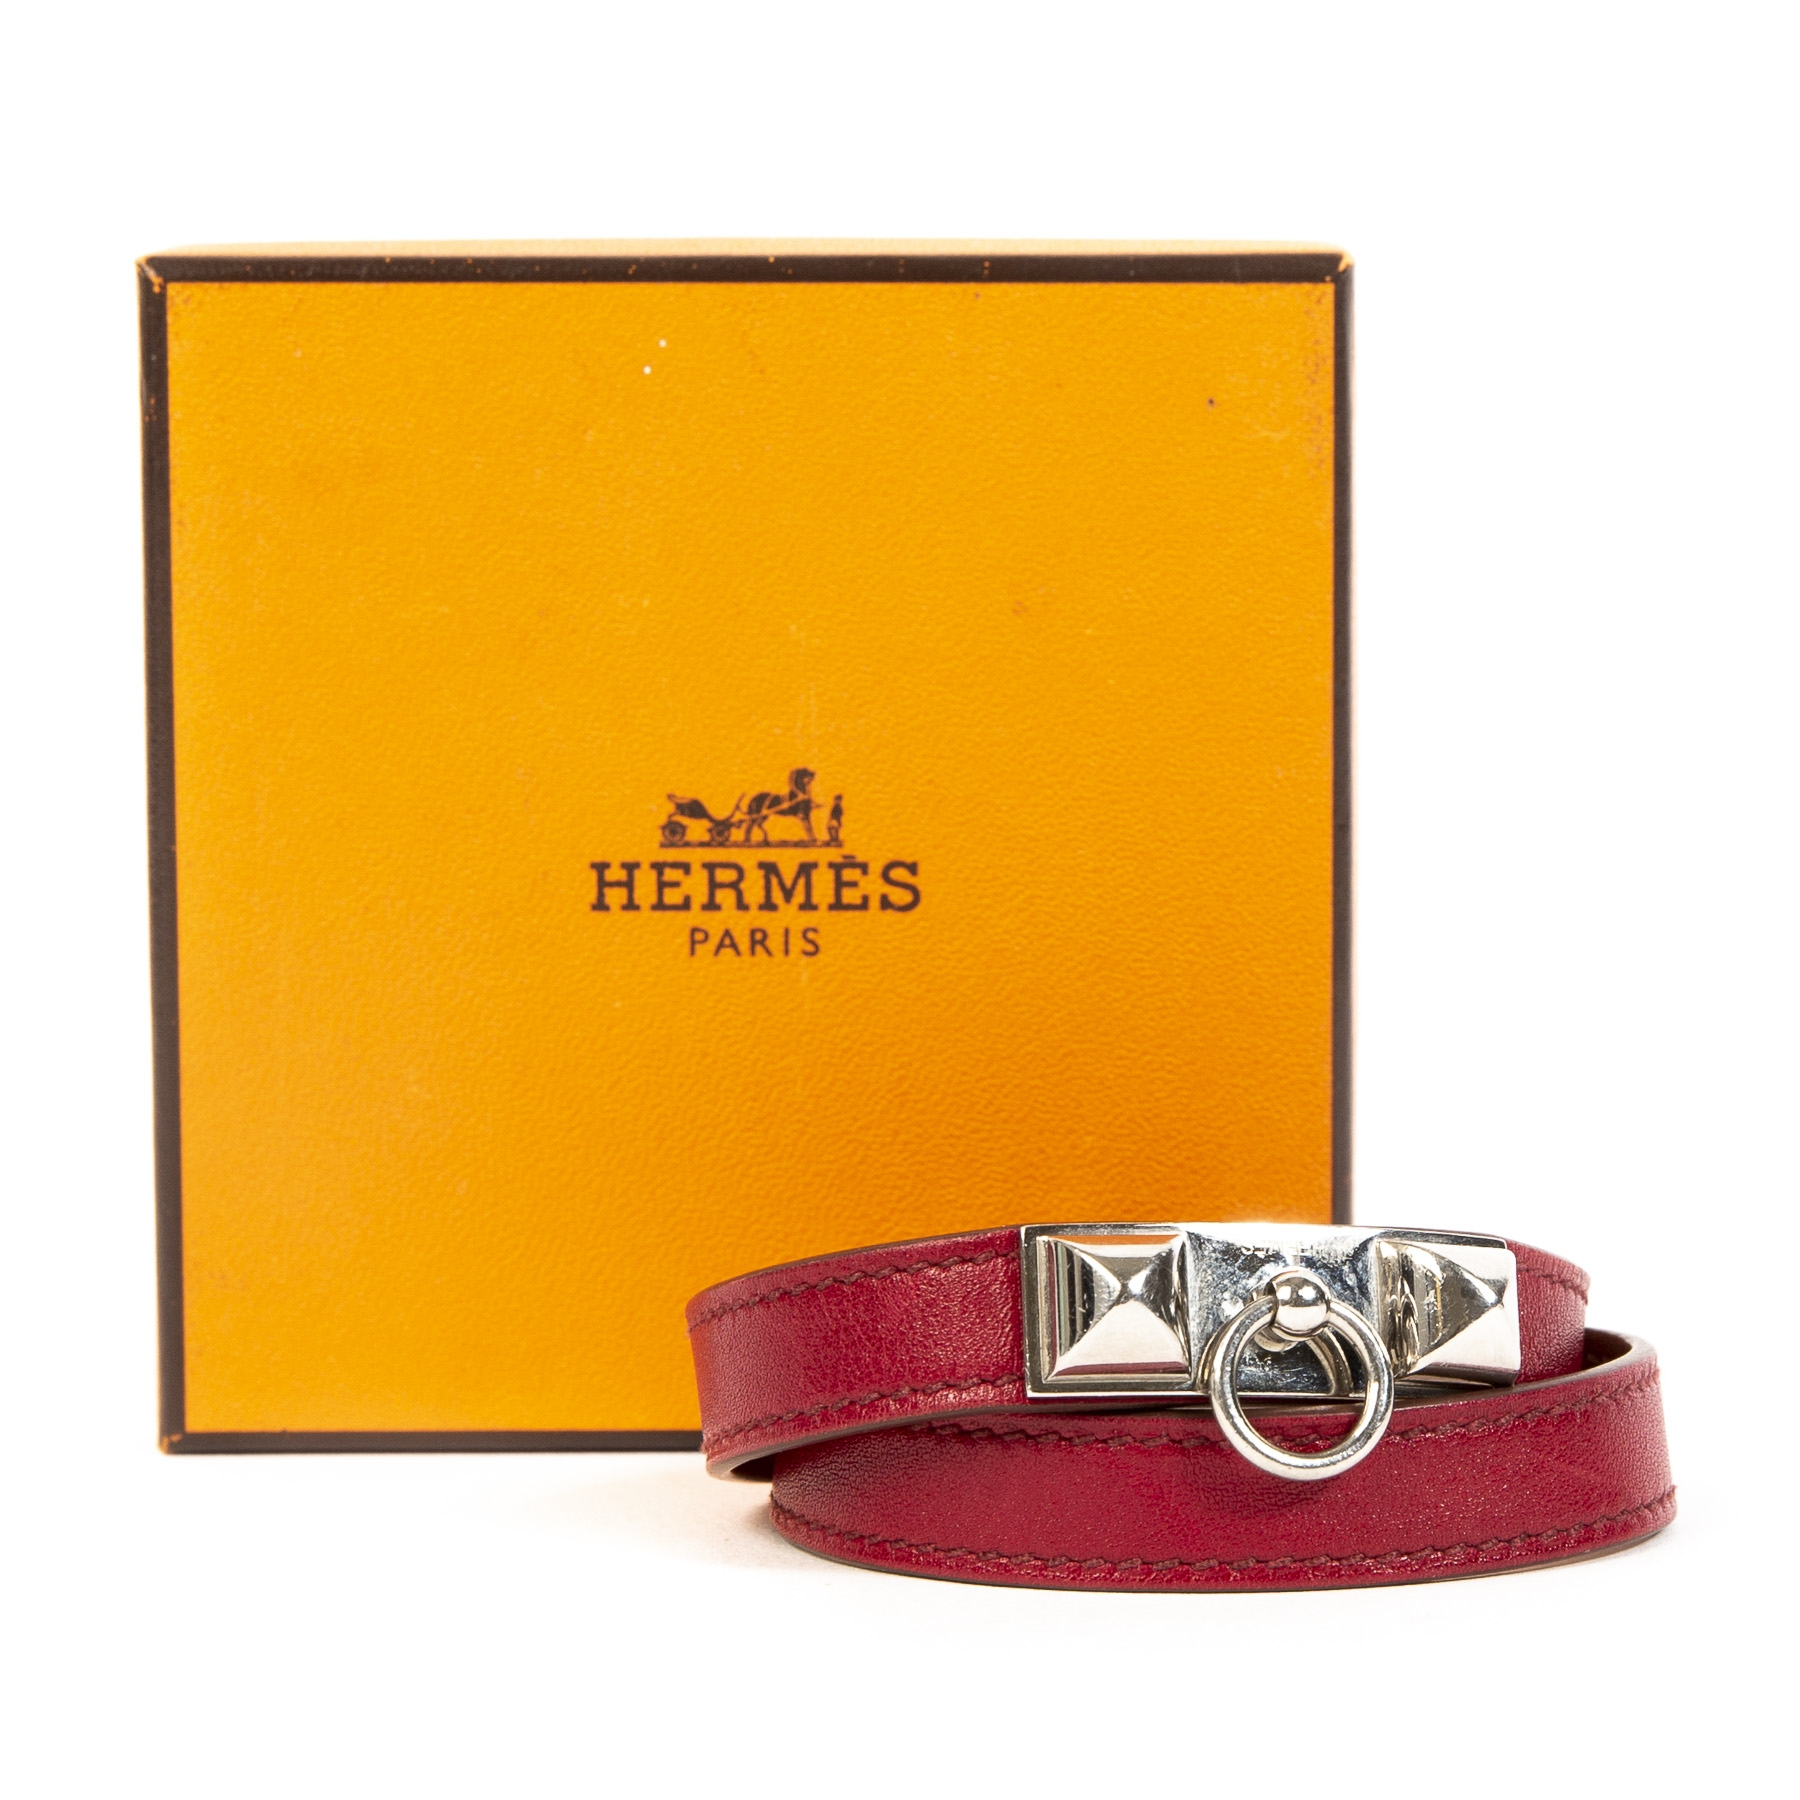 Buy authentic secondhand Hermes bracelet at labellov webshop.